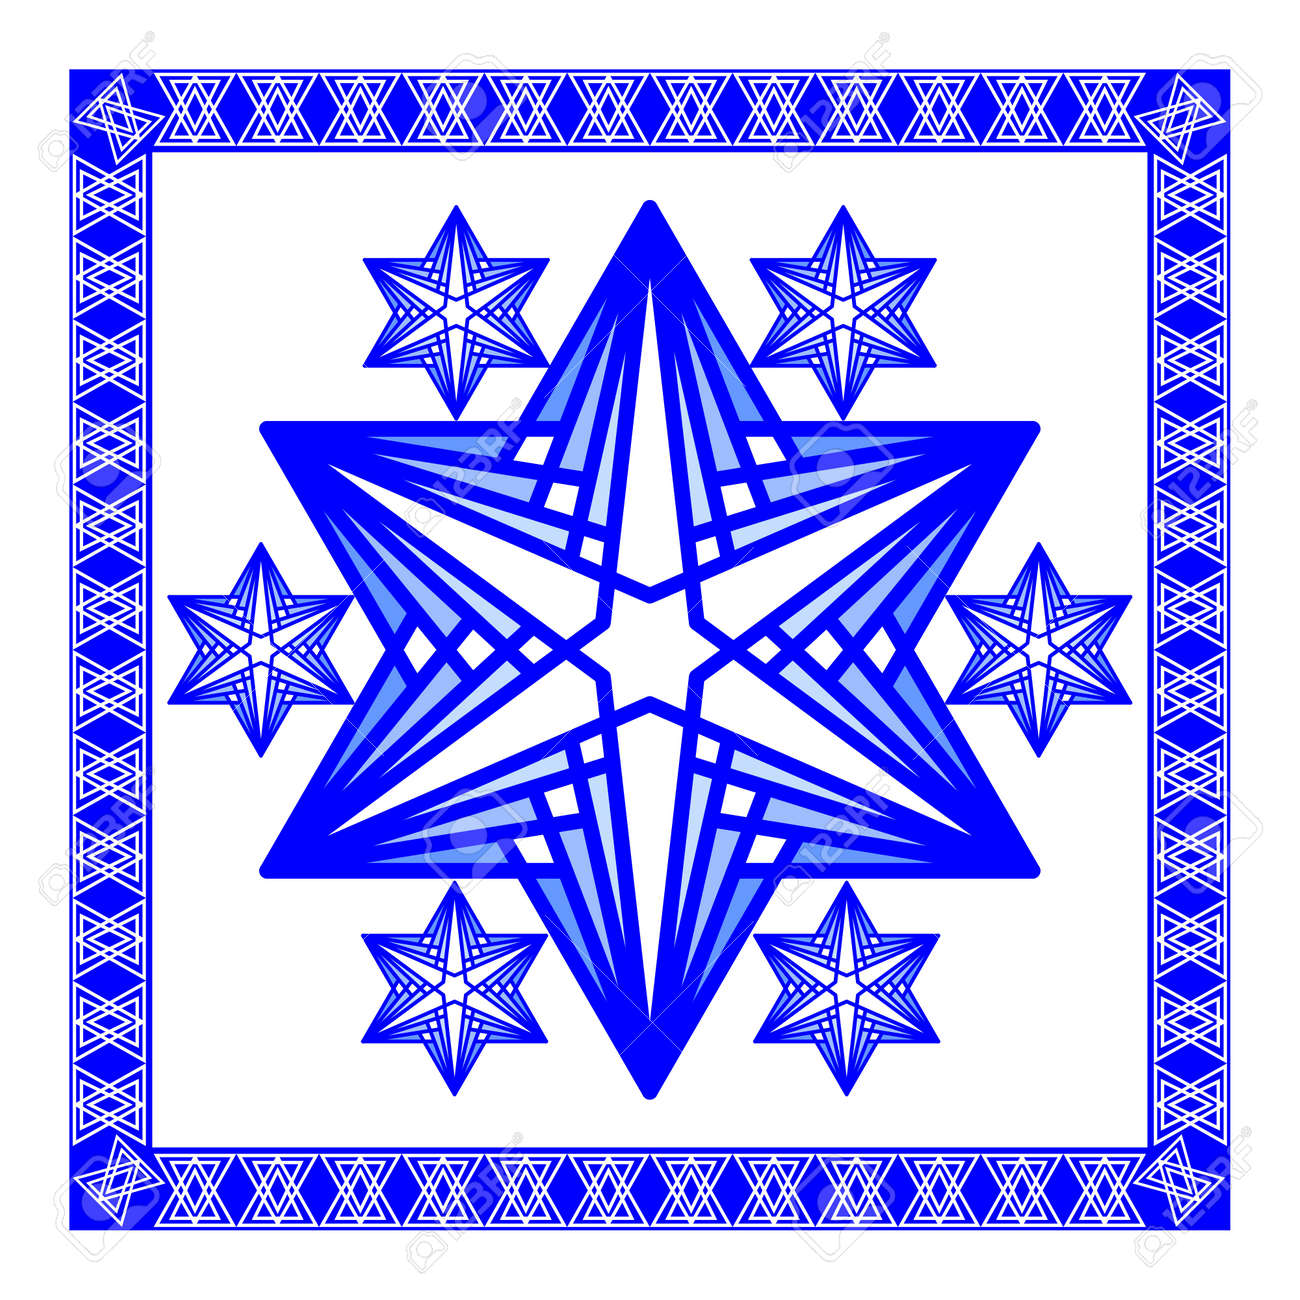 Star Of David Decoration Tile. Composed Of Simply Shapes In Blue ...